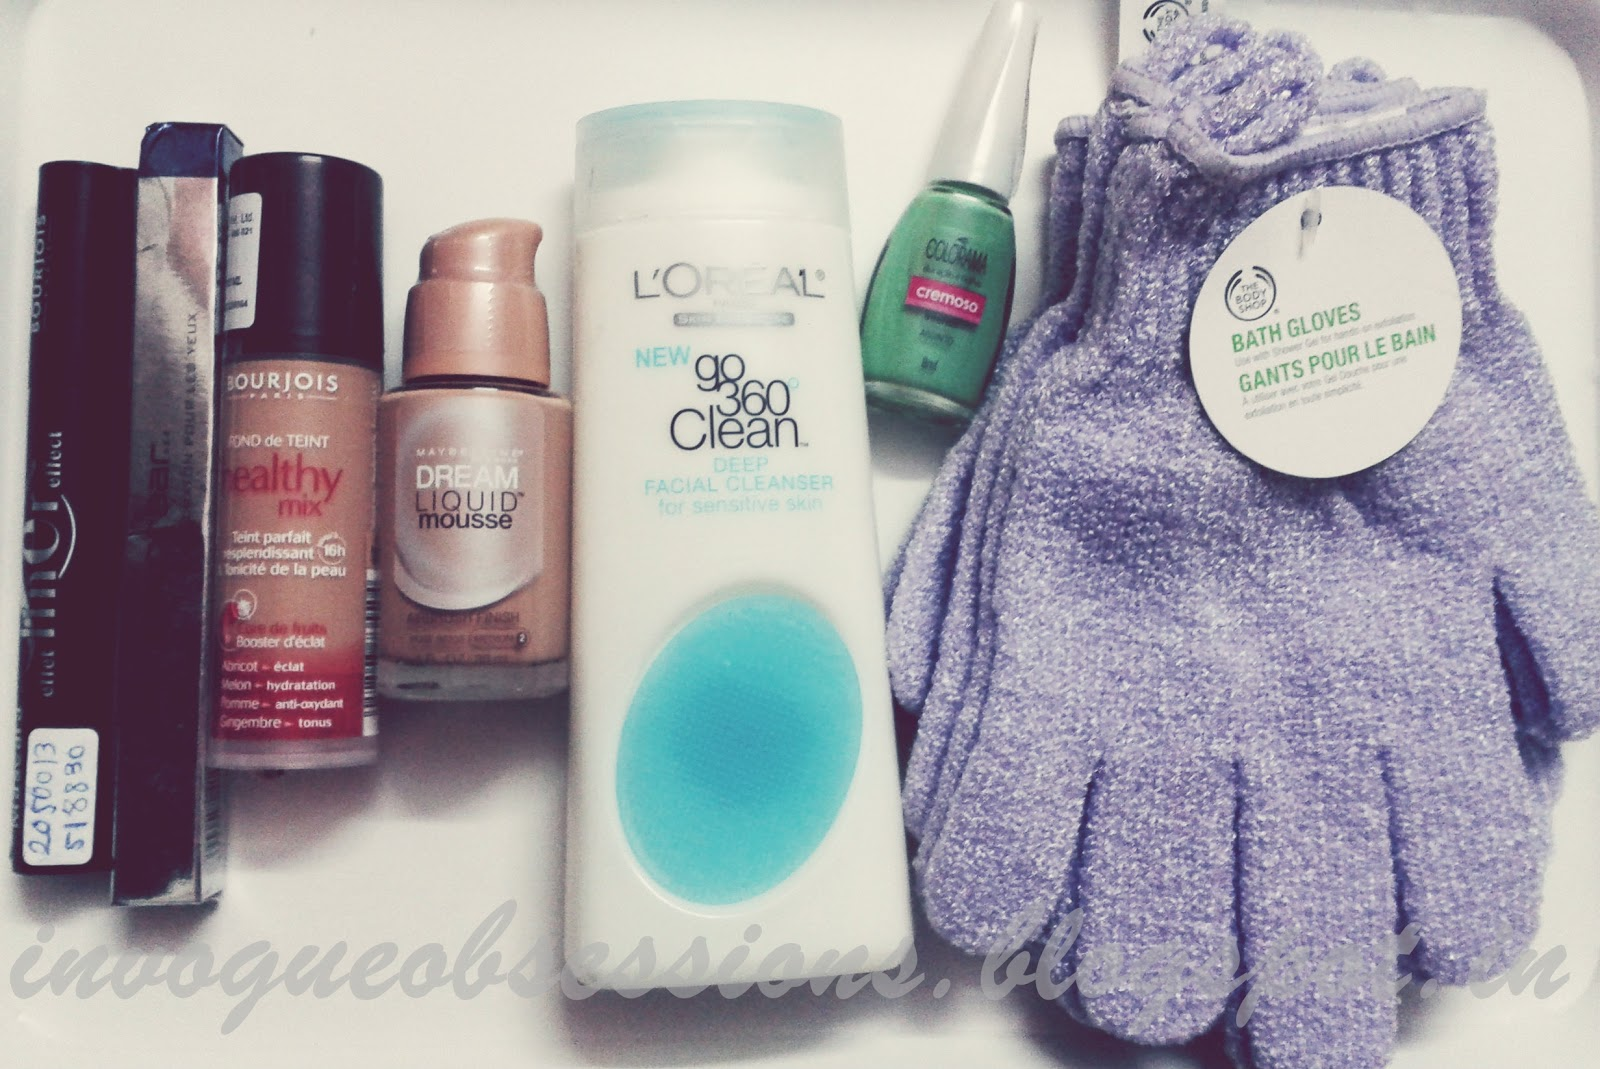 Bourjois, Bourjois Healthy Mix, Colorbar, Colorbar I-Glide Pencil, Maybelline, Maybelline Dream Liquid Mousse, The Body Shop, The Body Shop Bath Exfoliating Gloves, Bourjois Healthy Mix Foundation India